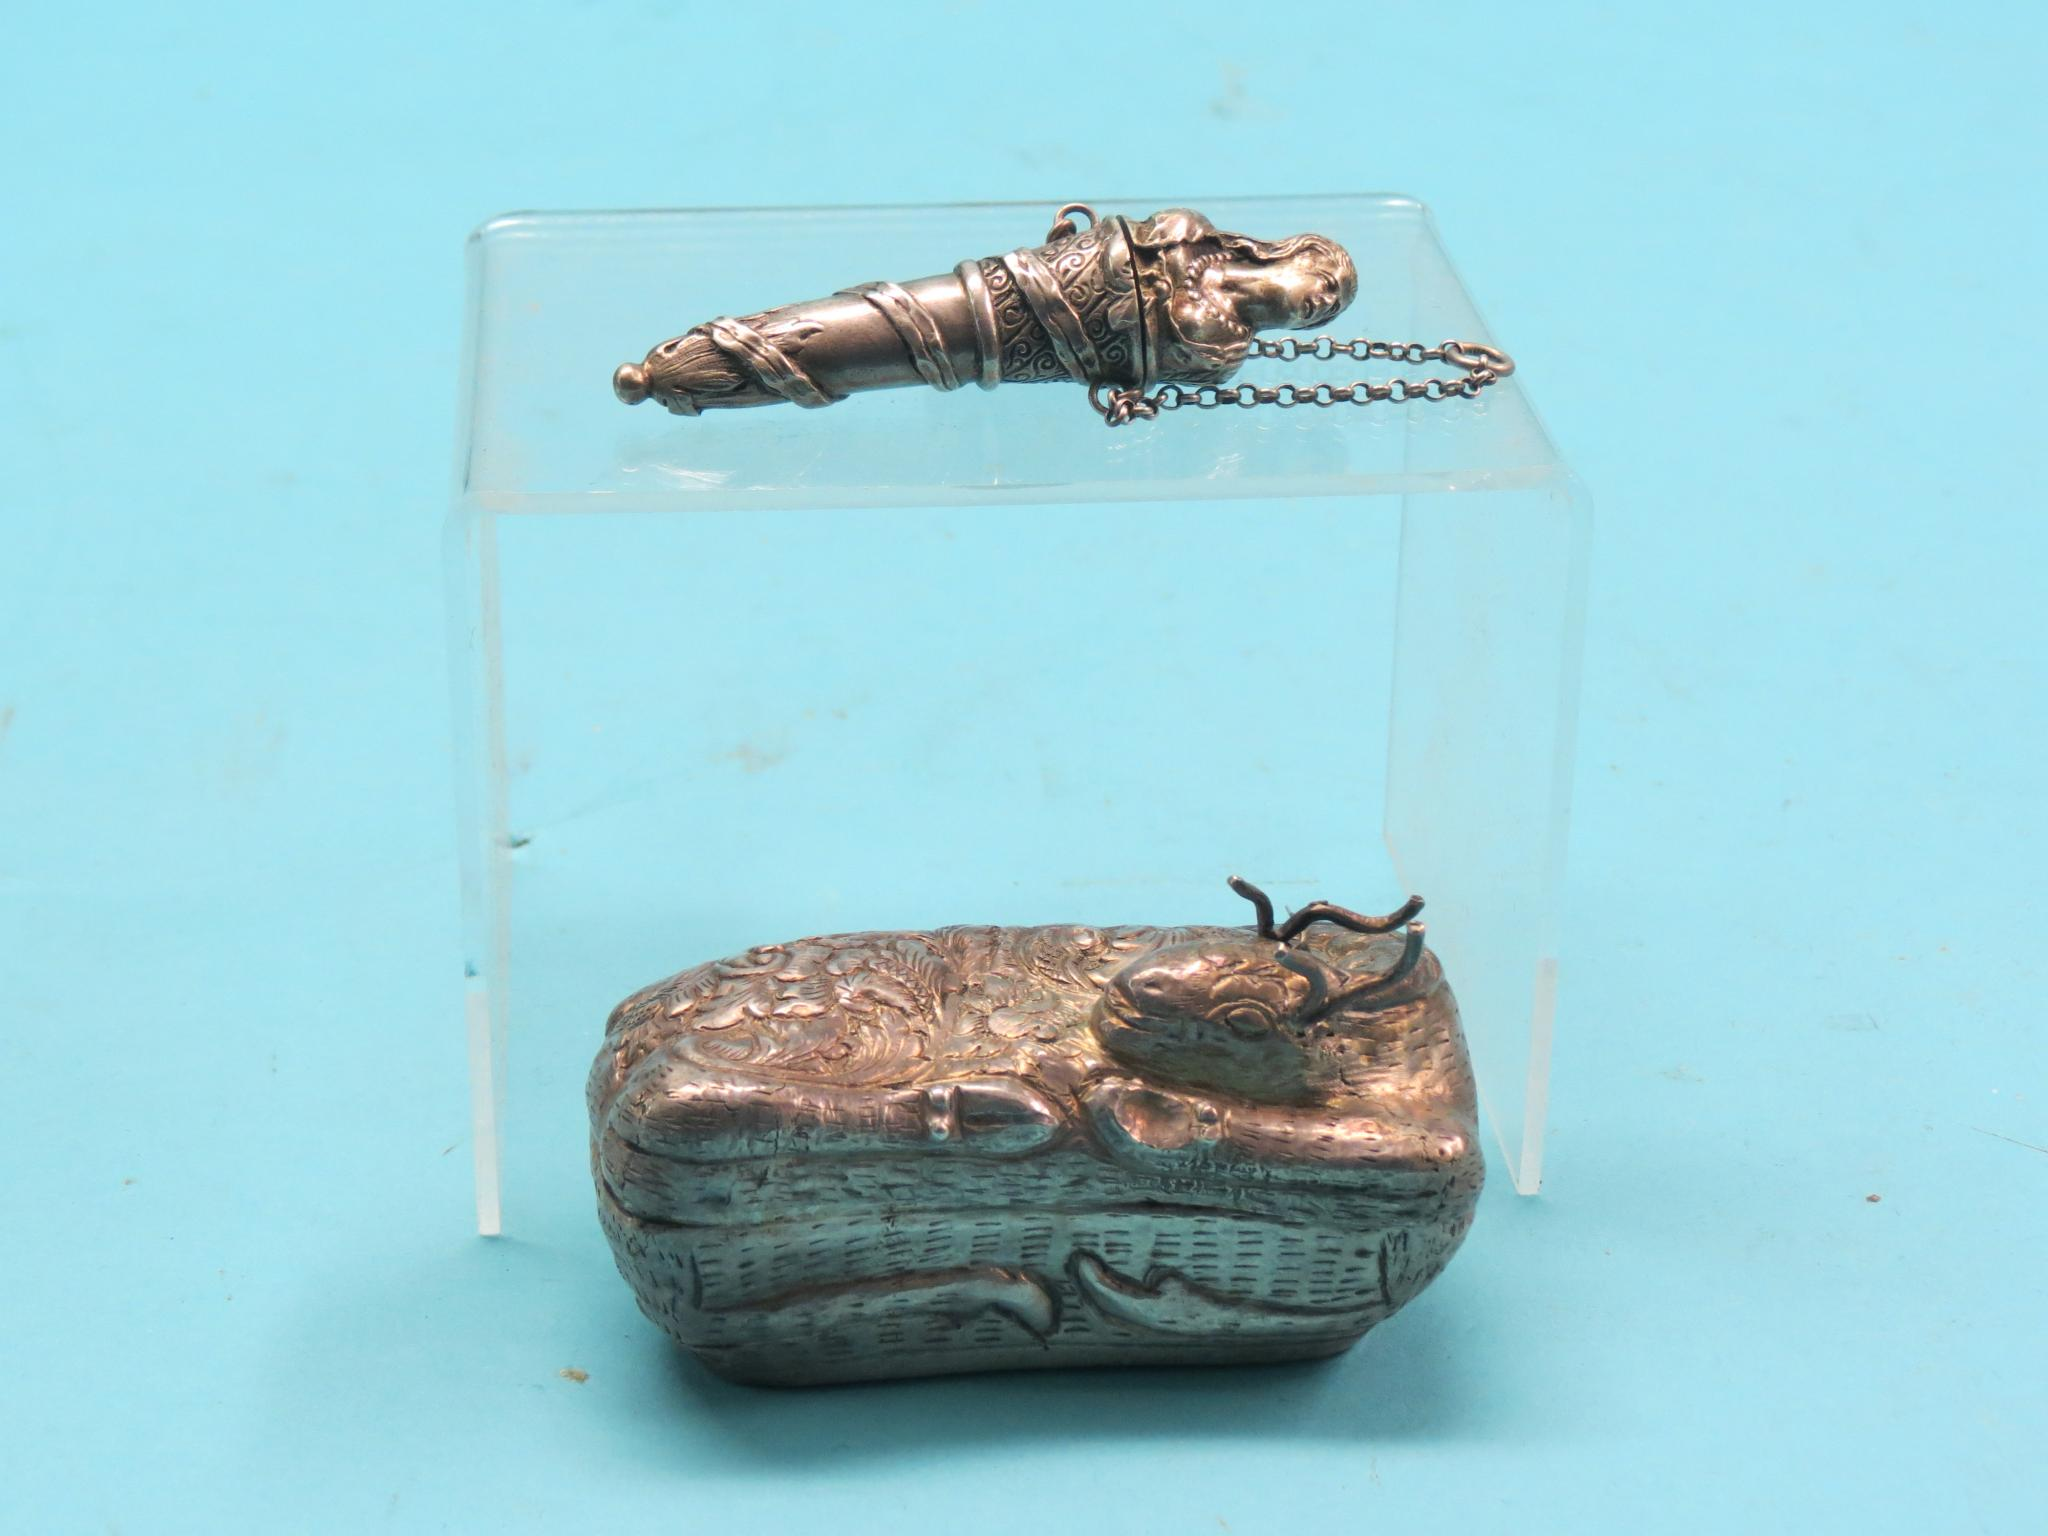 Lot 512 - A Cambodian .900 silver betel nut case, in the form of a recumbent deer, 3in., and a 19th century